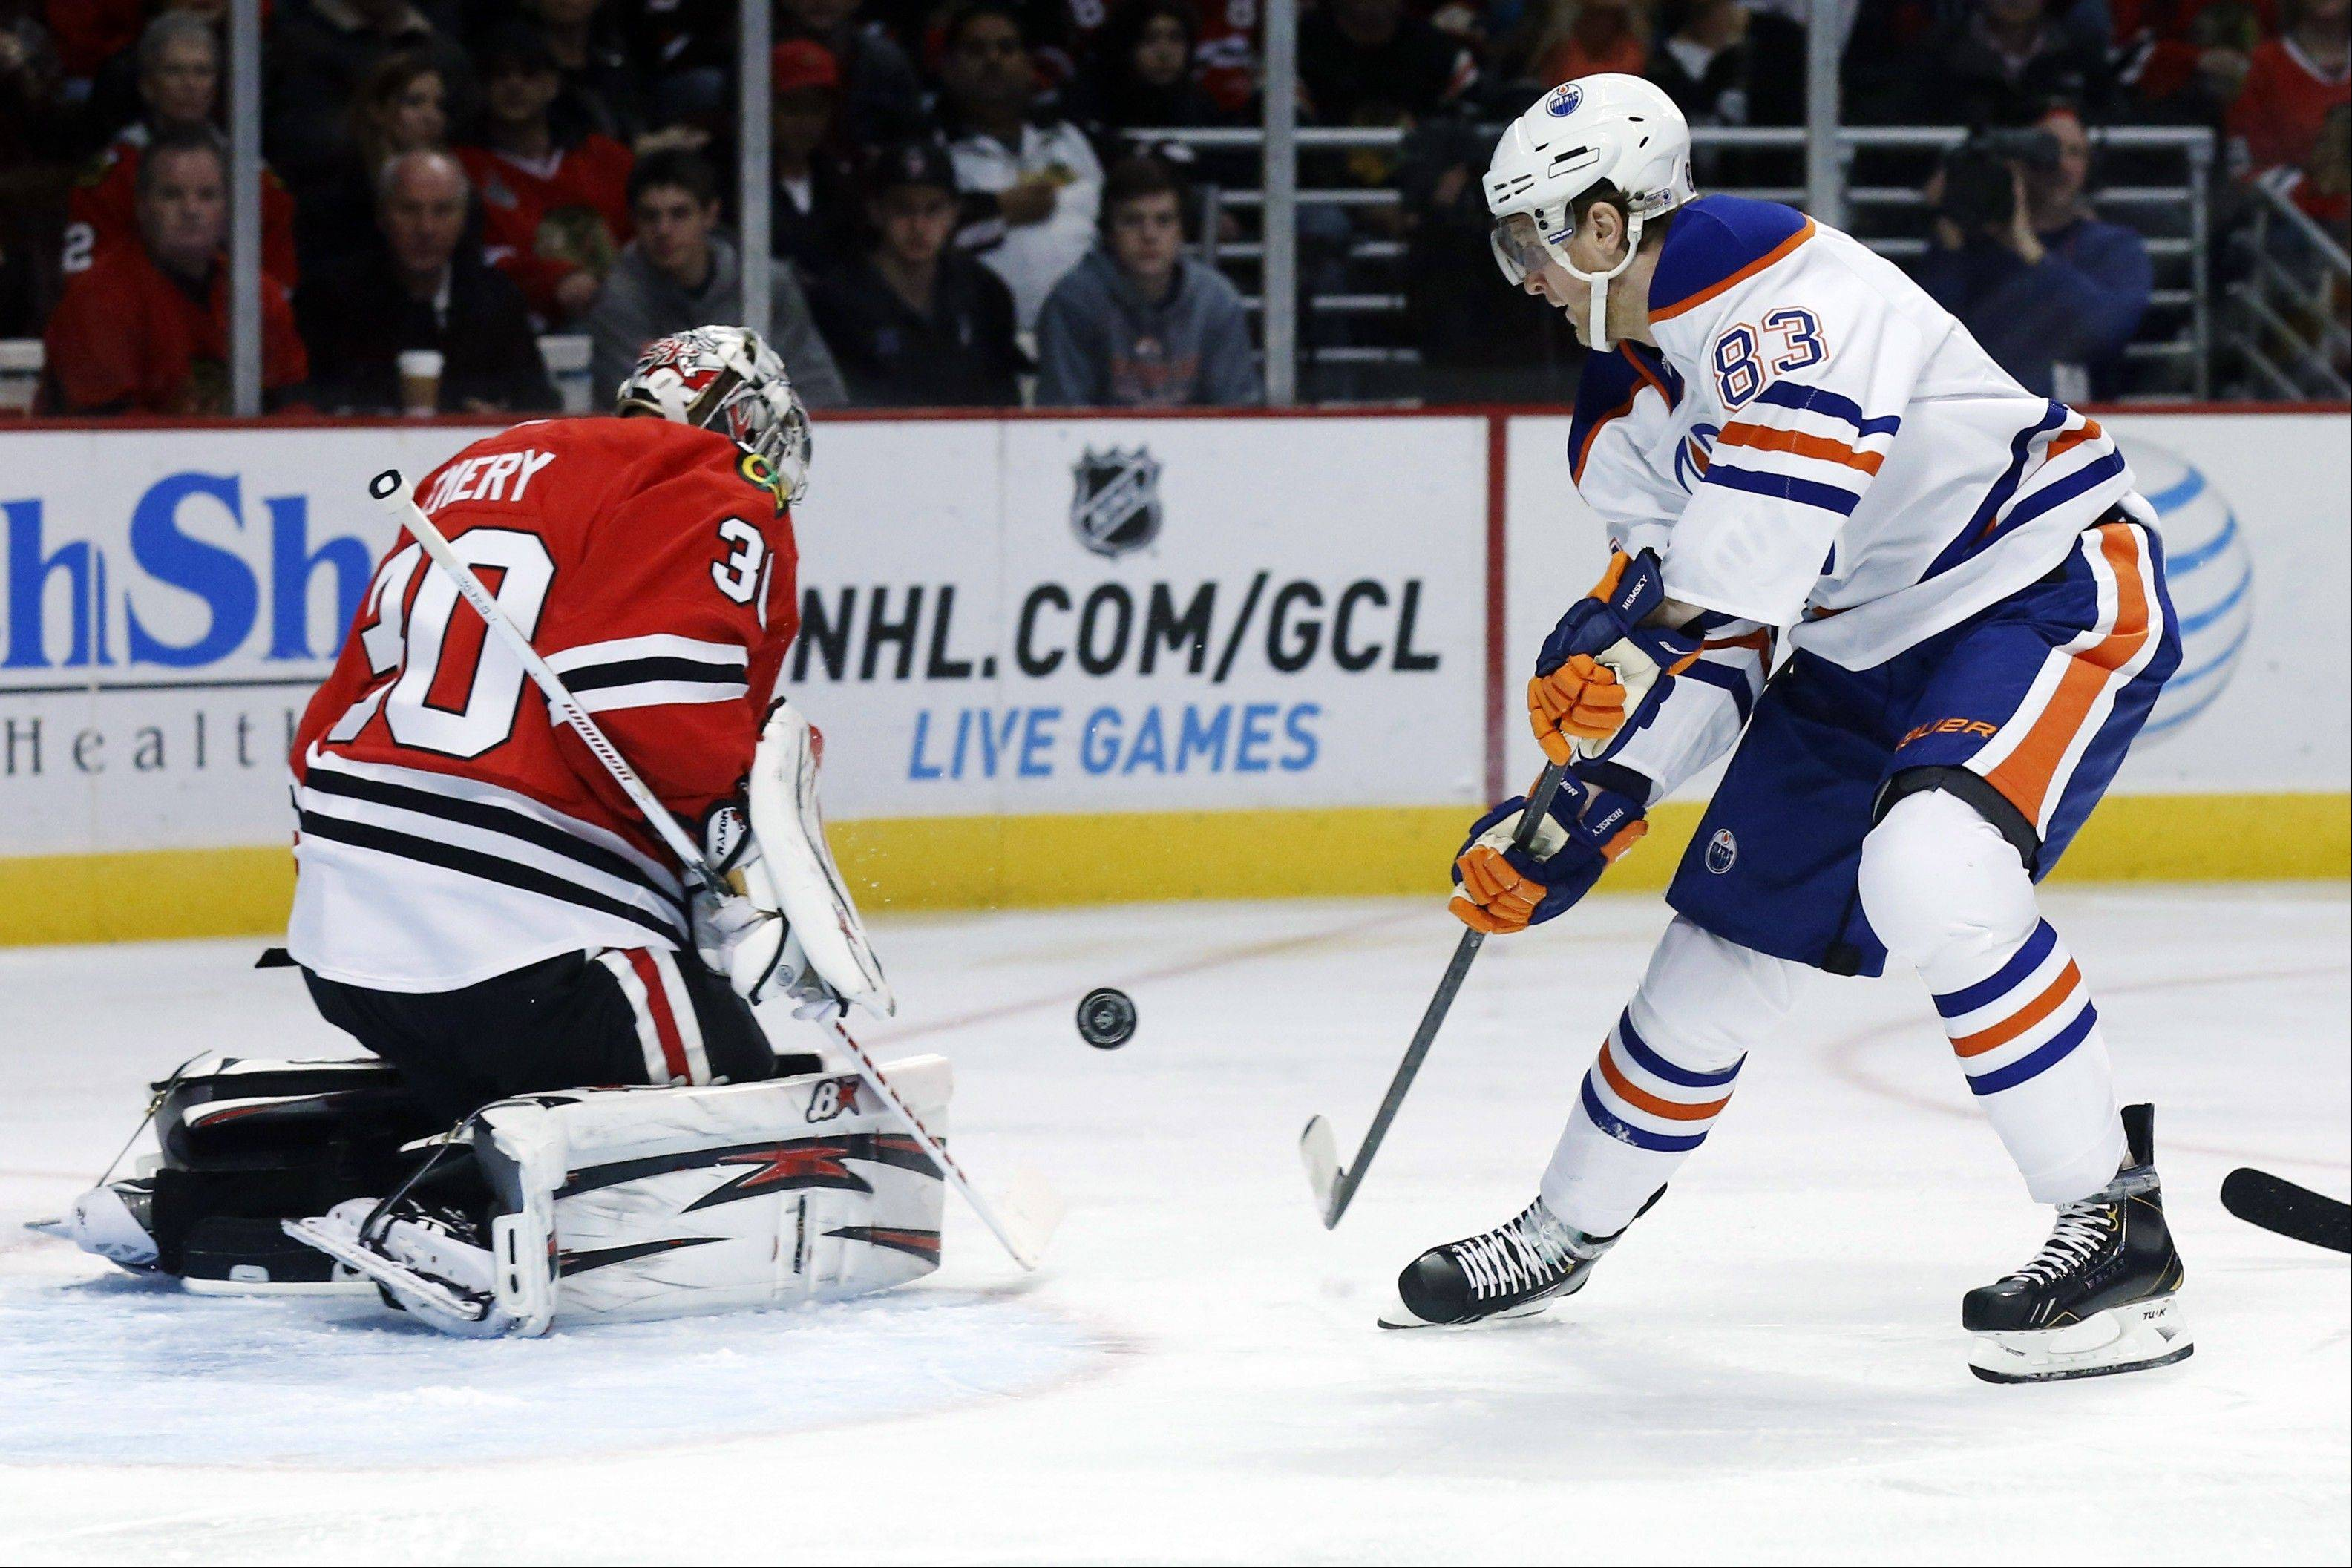 Chicago Blackhawks goalie Ray Emery makes a save on a shot by Edmonton Oilers right wing Ales Hemsky during the first period.